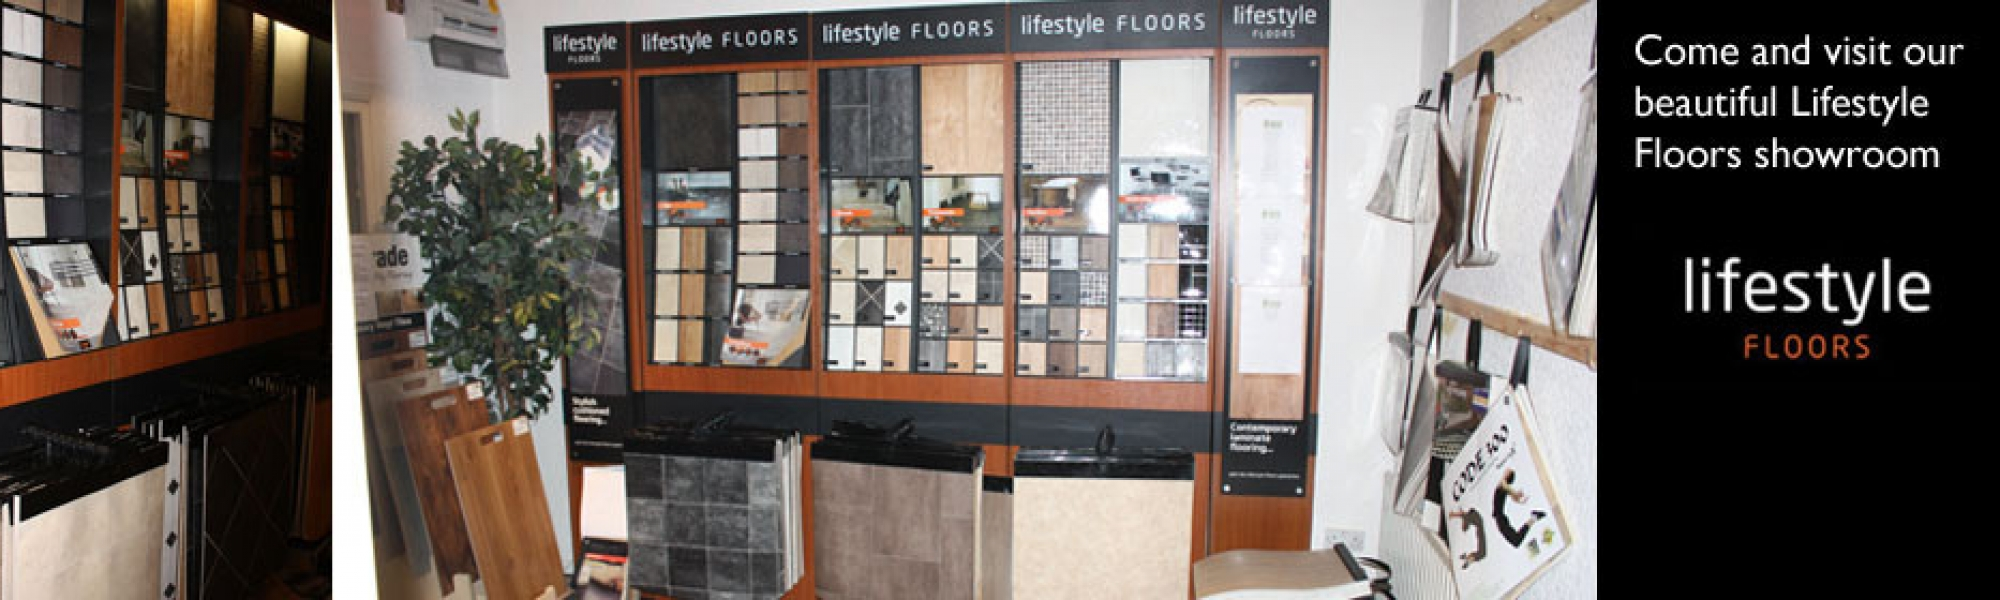 lifestyle-floors-showroom